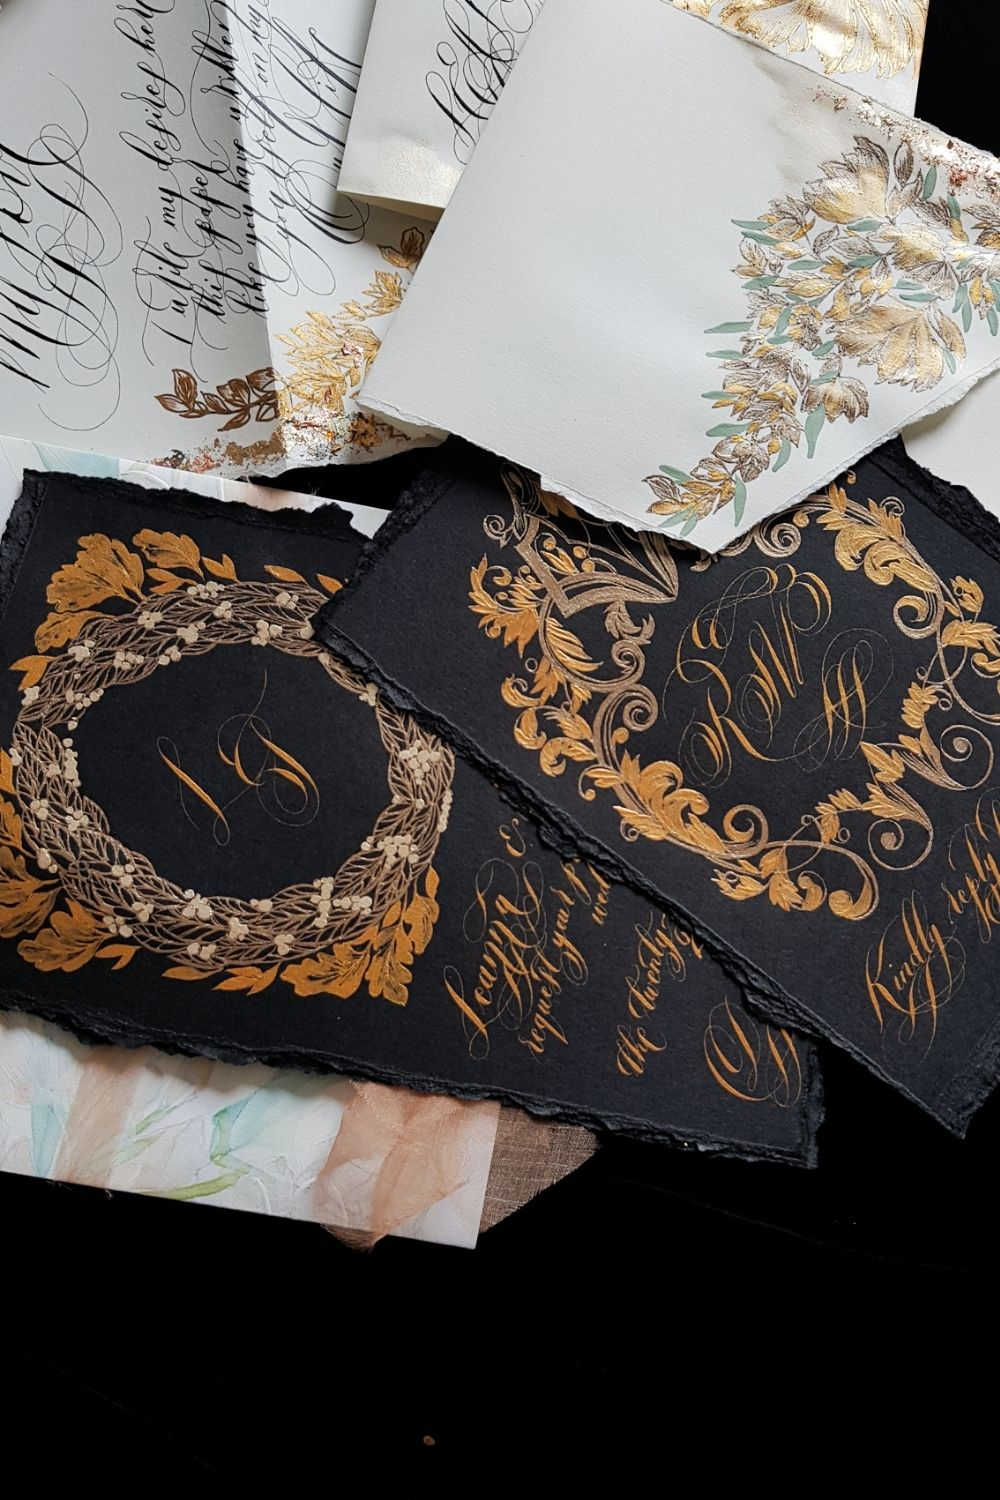 Black tie wedding stationery with black and gold hues and cream, pale grey and green floral design